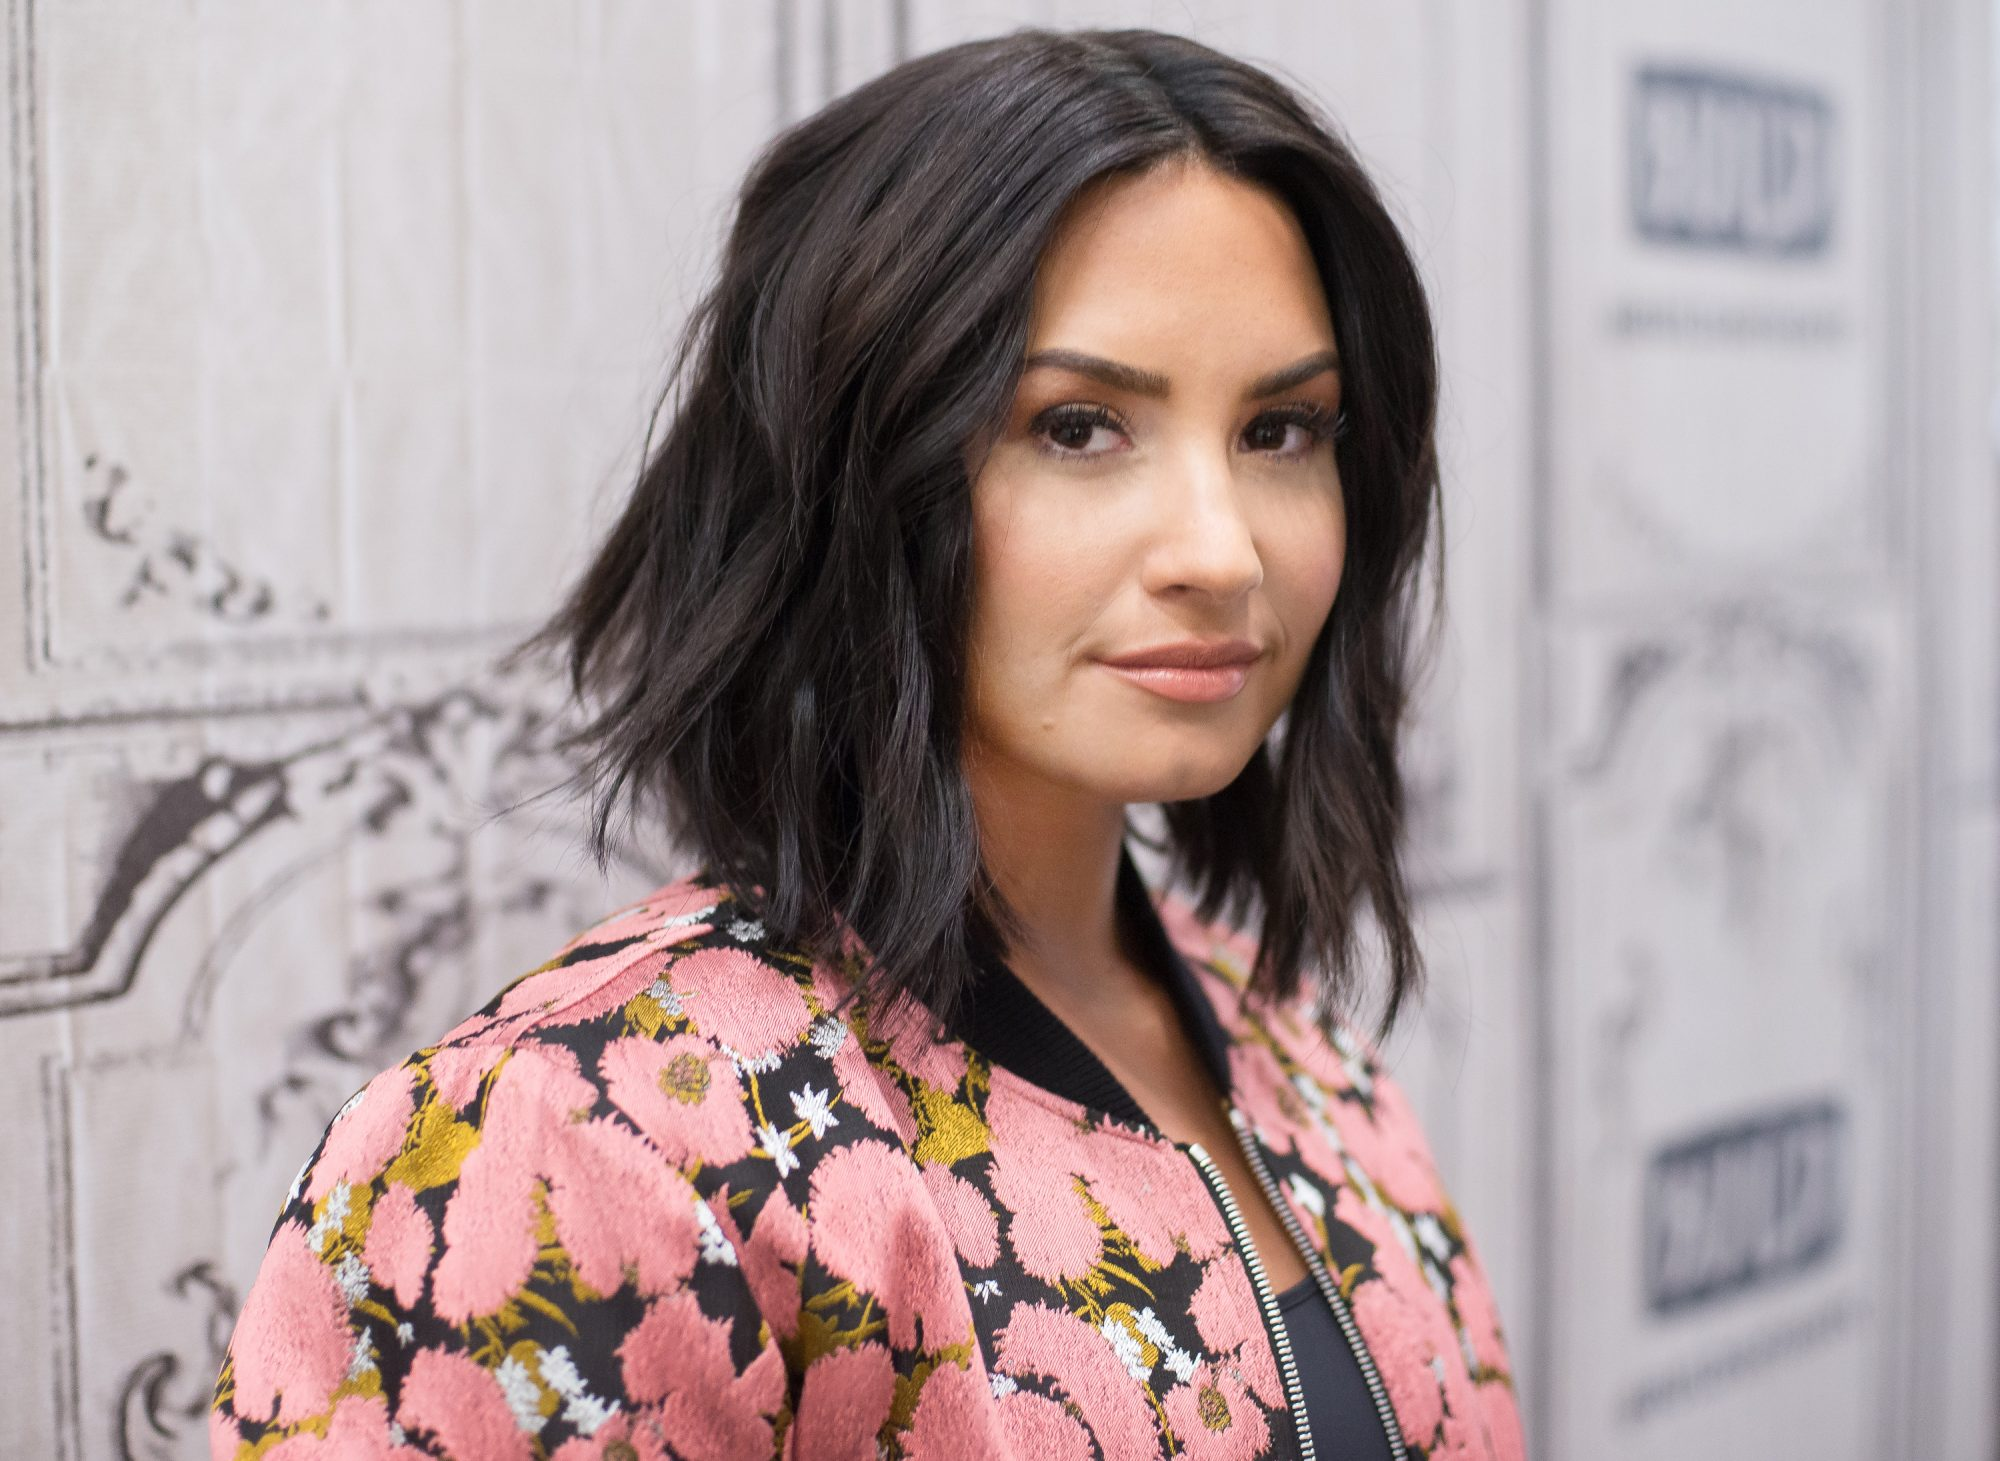 Demi Lovato Doesn't Like to Be Labeled as Bipolar